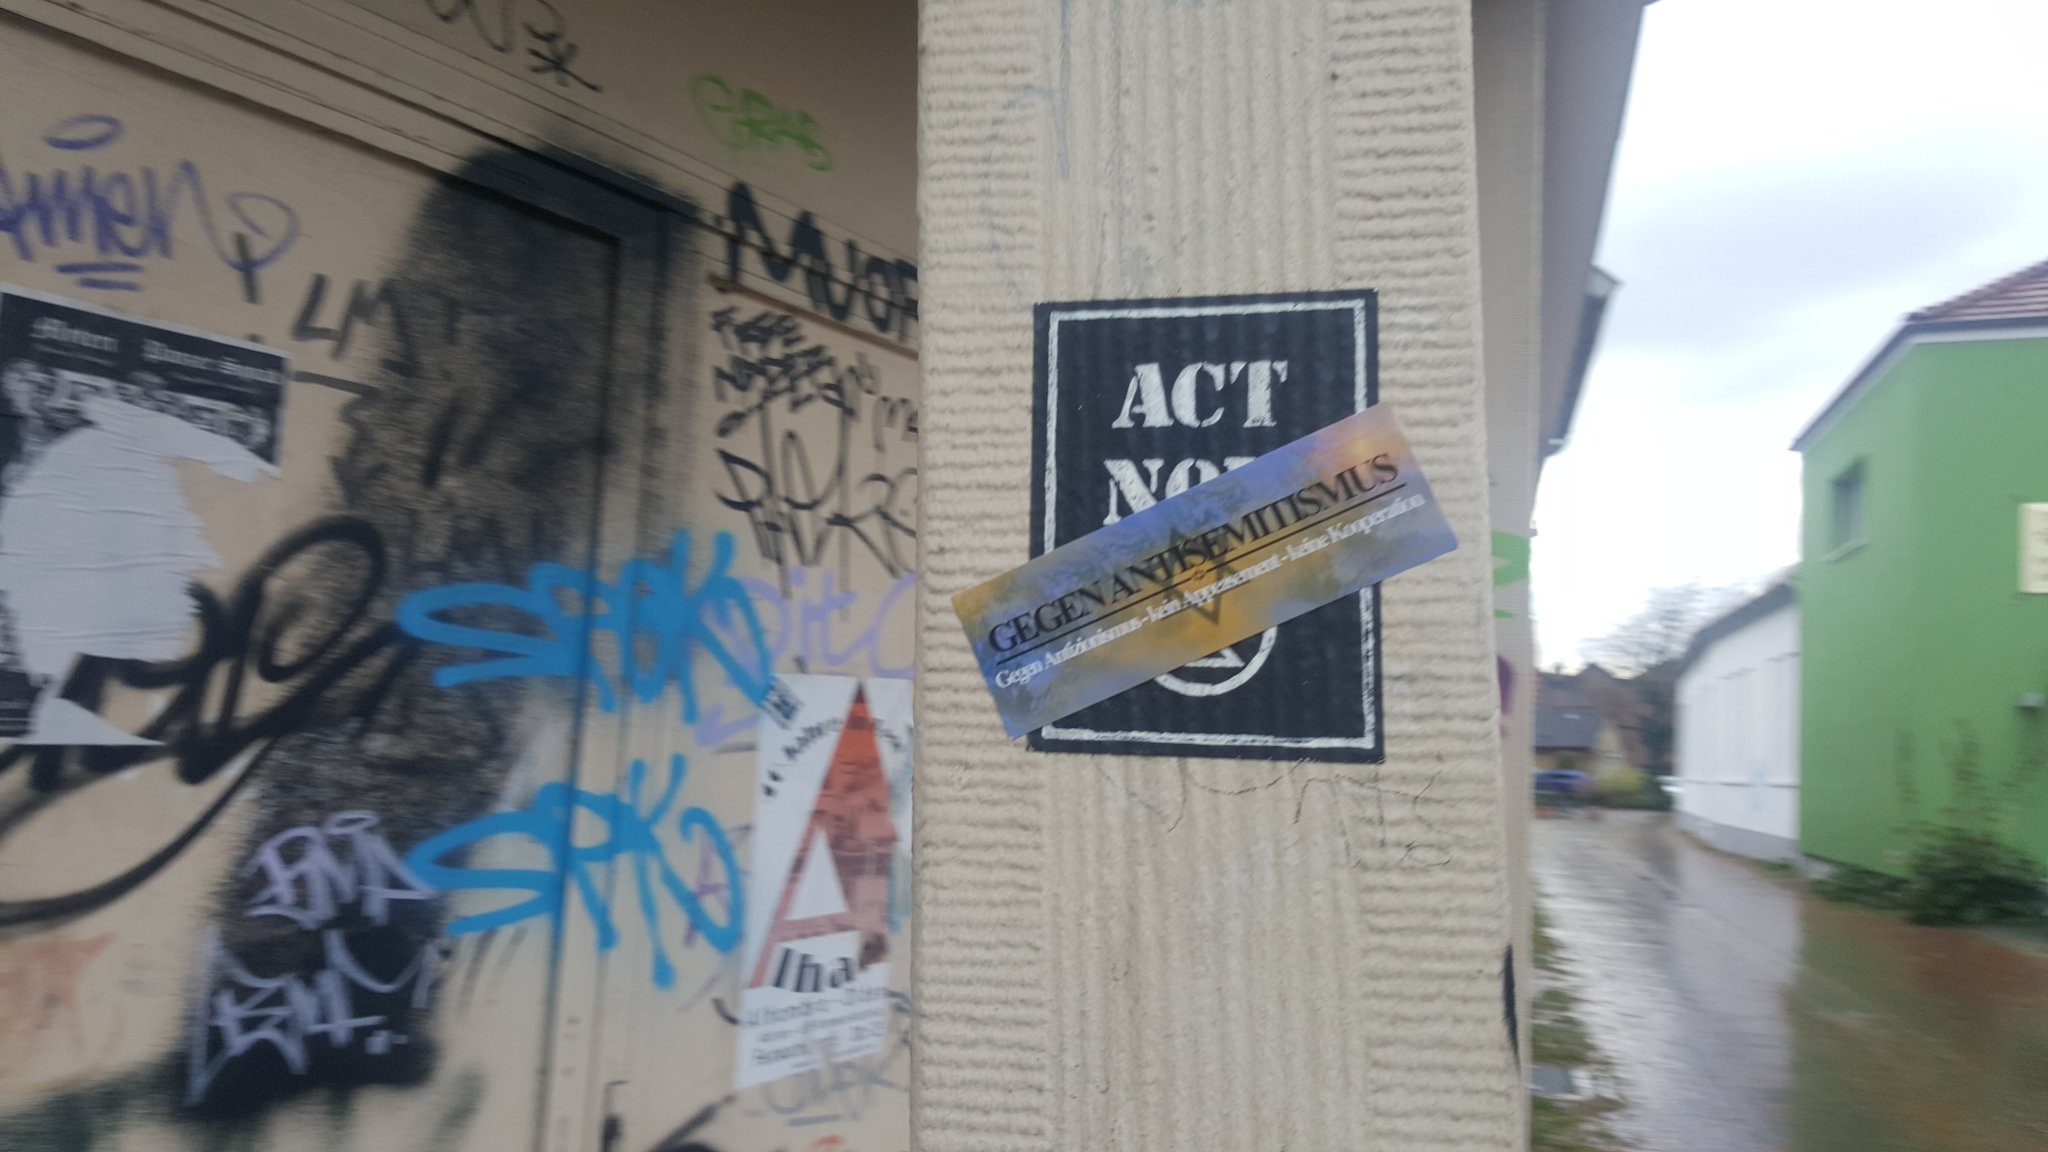 Extinction Rebellion Sticker unter antifaschistischem Aufkleber